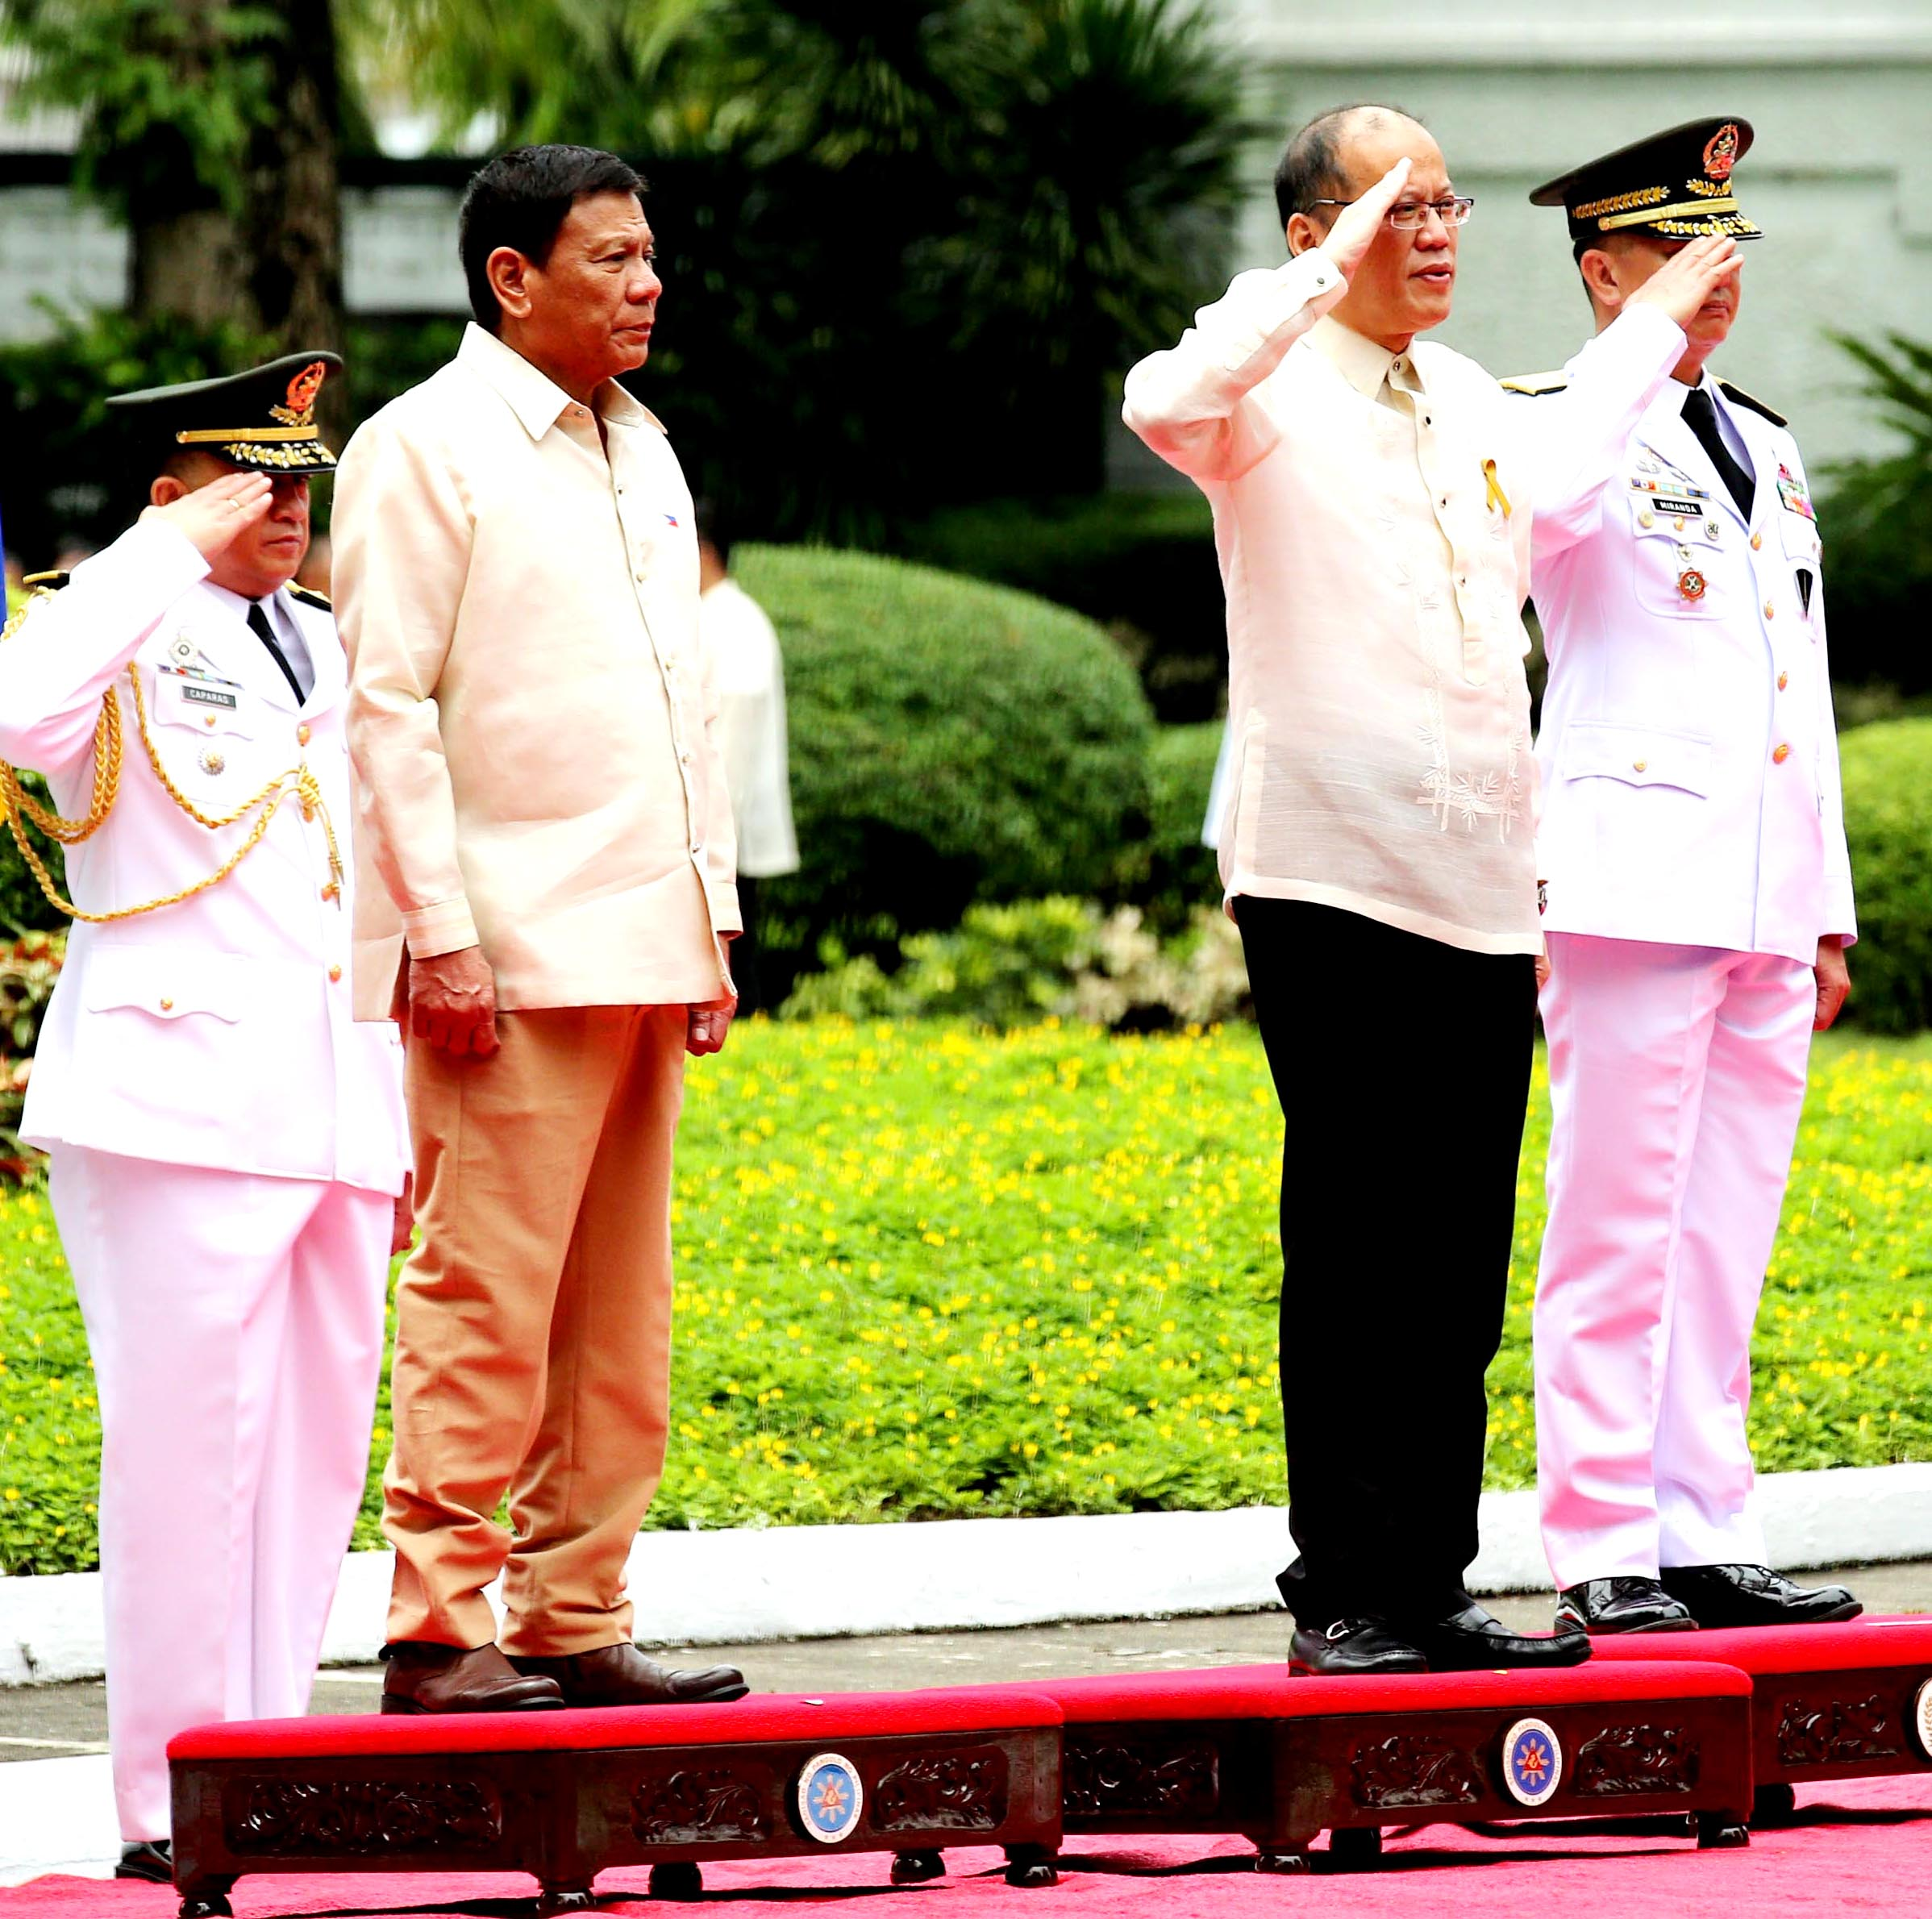 Outgoing President Benigno S. Aquino III salutes during the departure honors accorded for him at the Malacañang Grounds on Thursday (June 30, 2016). Also in photo is incoming President Rodrigo R. Duterte. (Photo: Lauro Montellano Jr./Malacañang Photo Bureau/PNA)